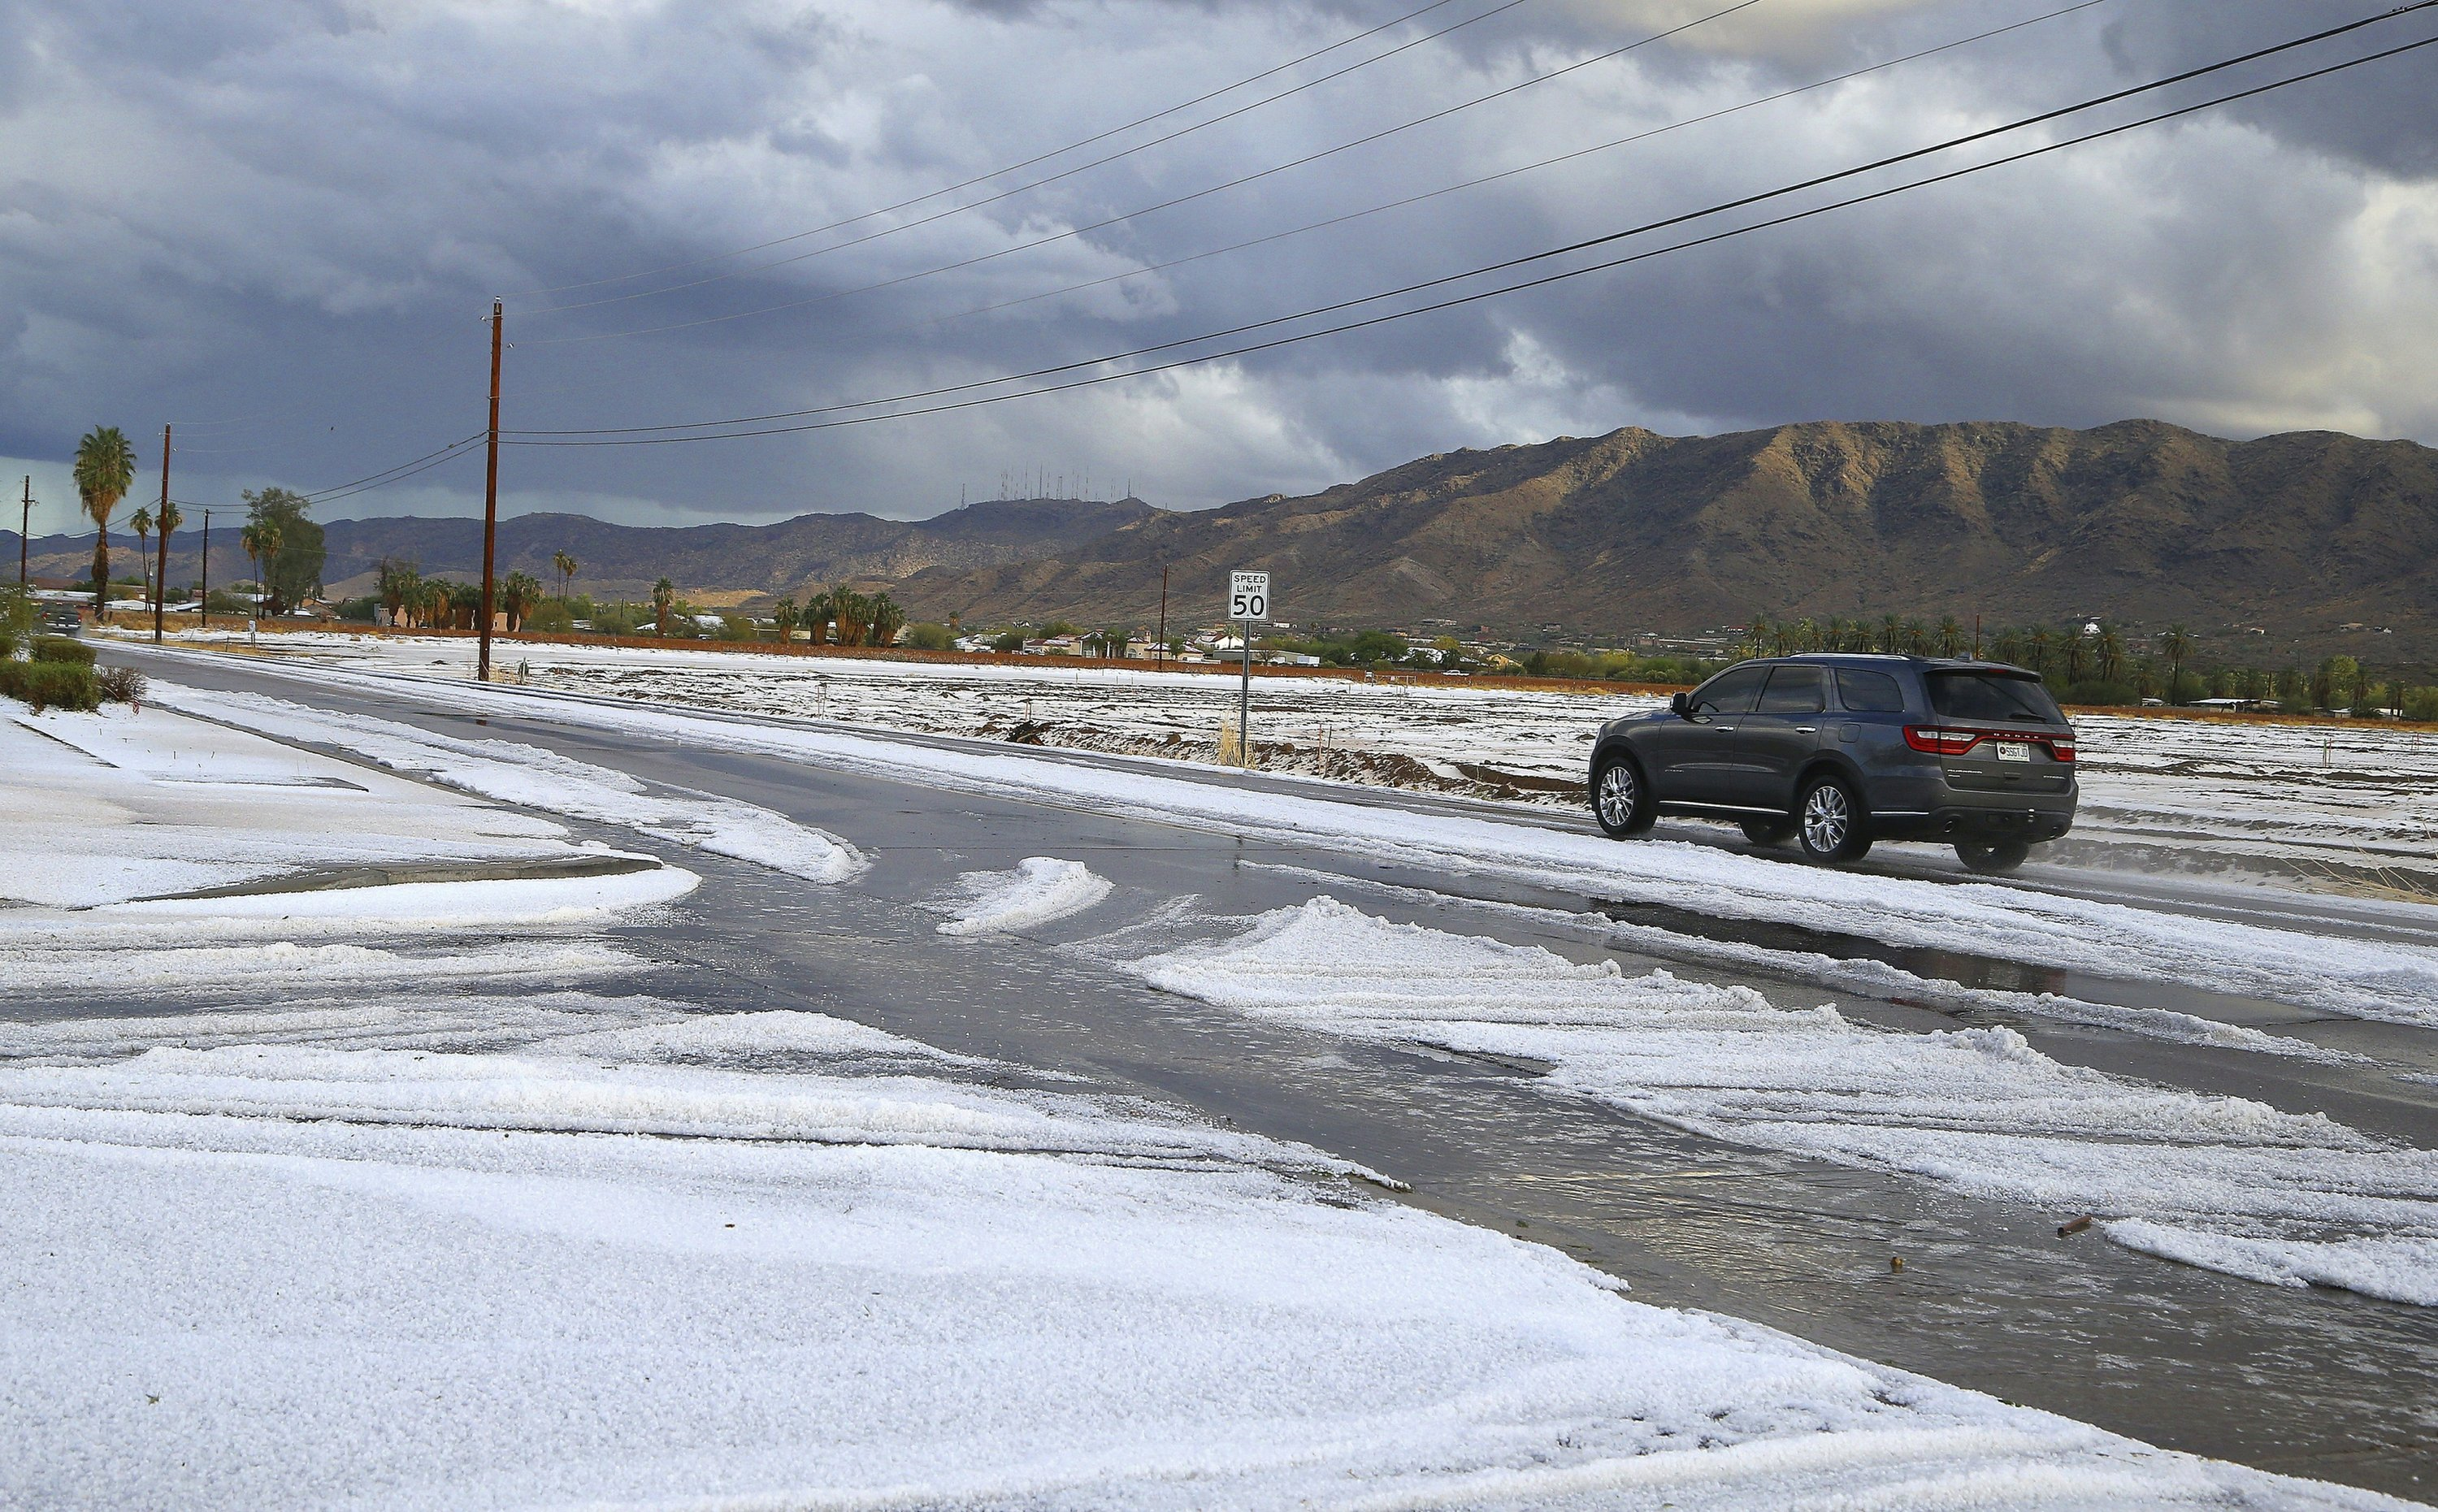 Snow-like hail in Phoenix-area desert caps days of storms